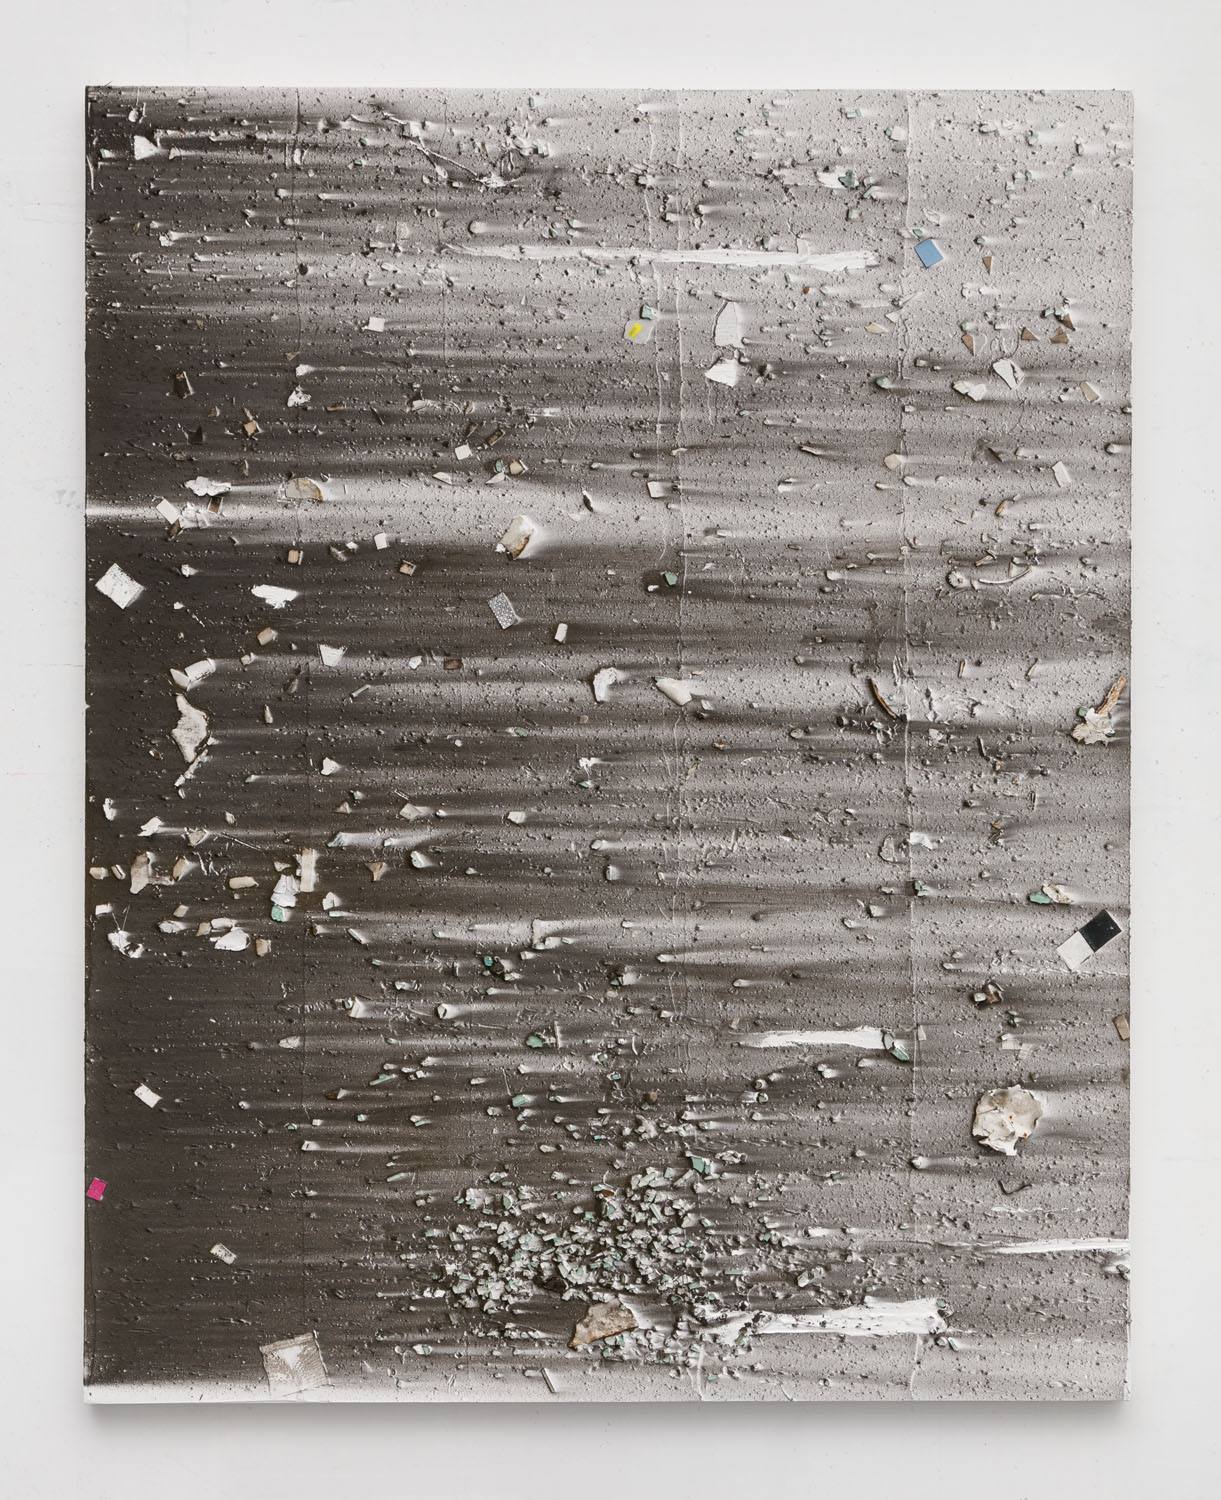 Thomas Fougeirol   Untitled , 2016  Mixed media on canvas  63 x 51 inches